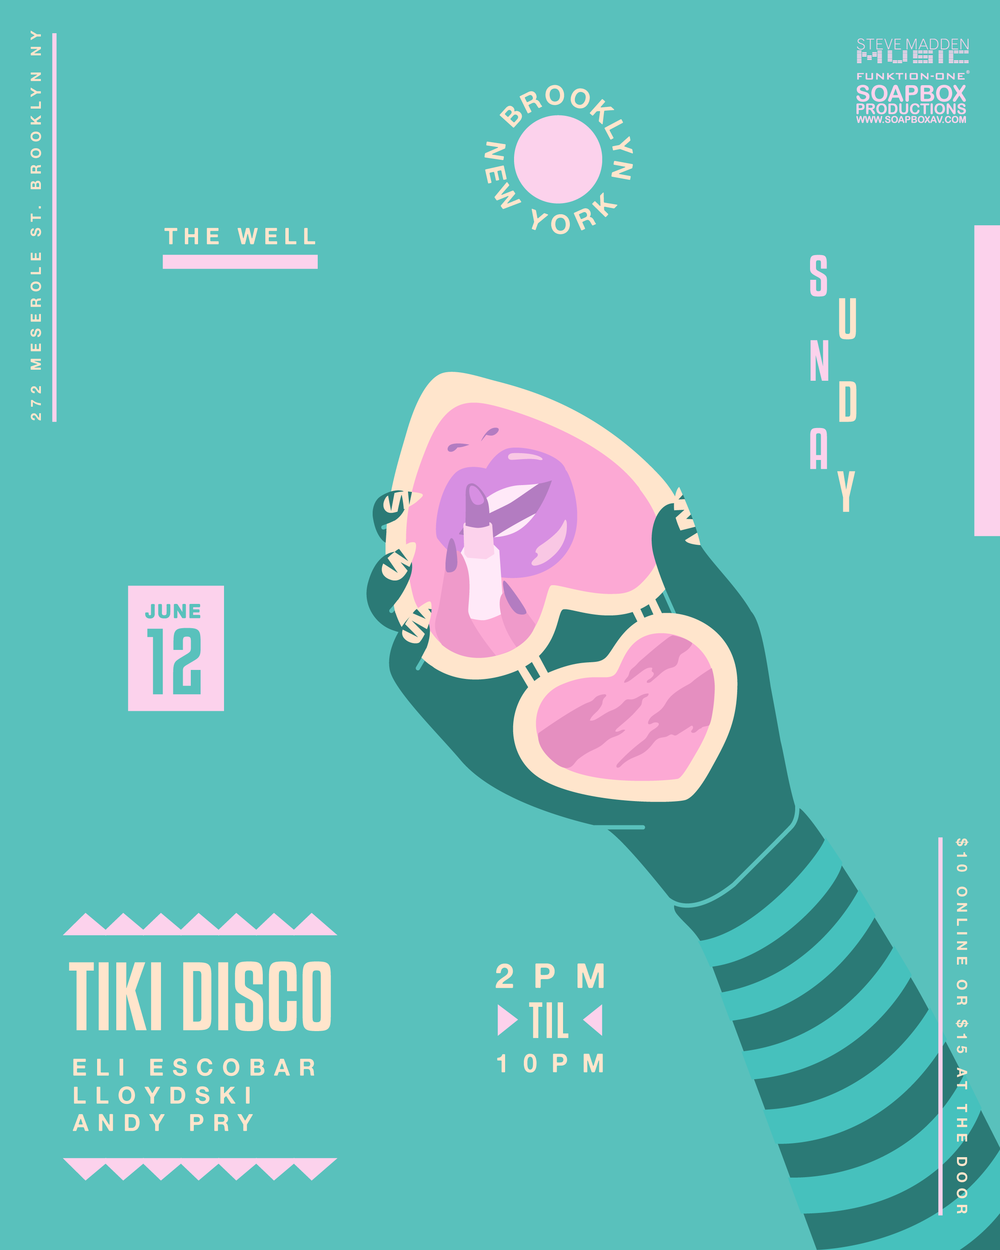 2016-06-02_tikidisco_poster_01 copy.png